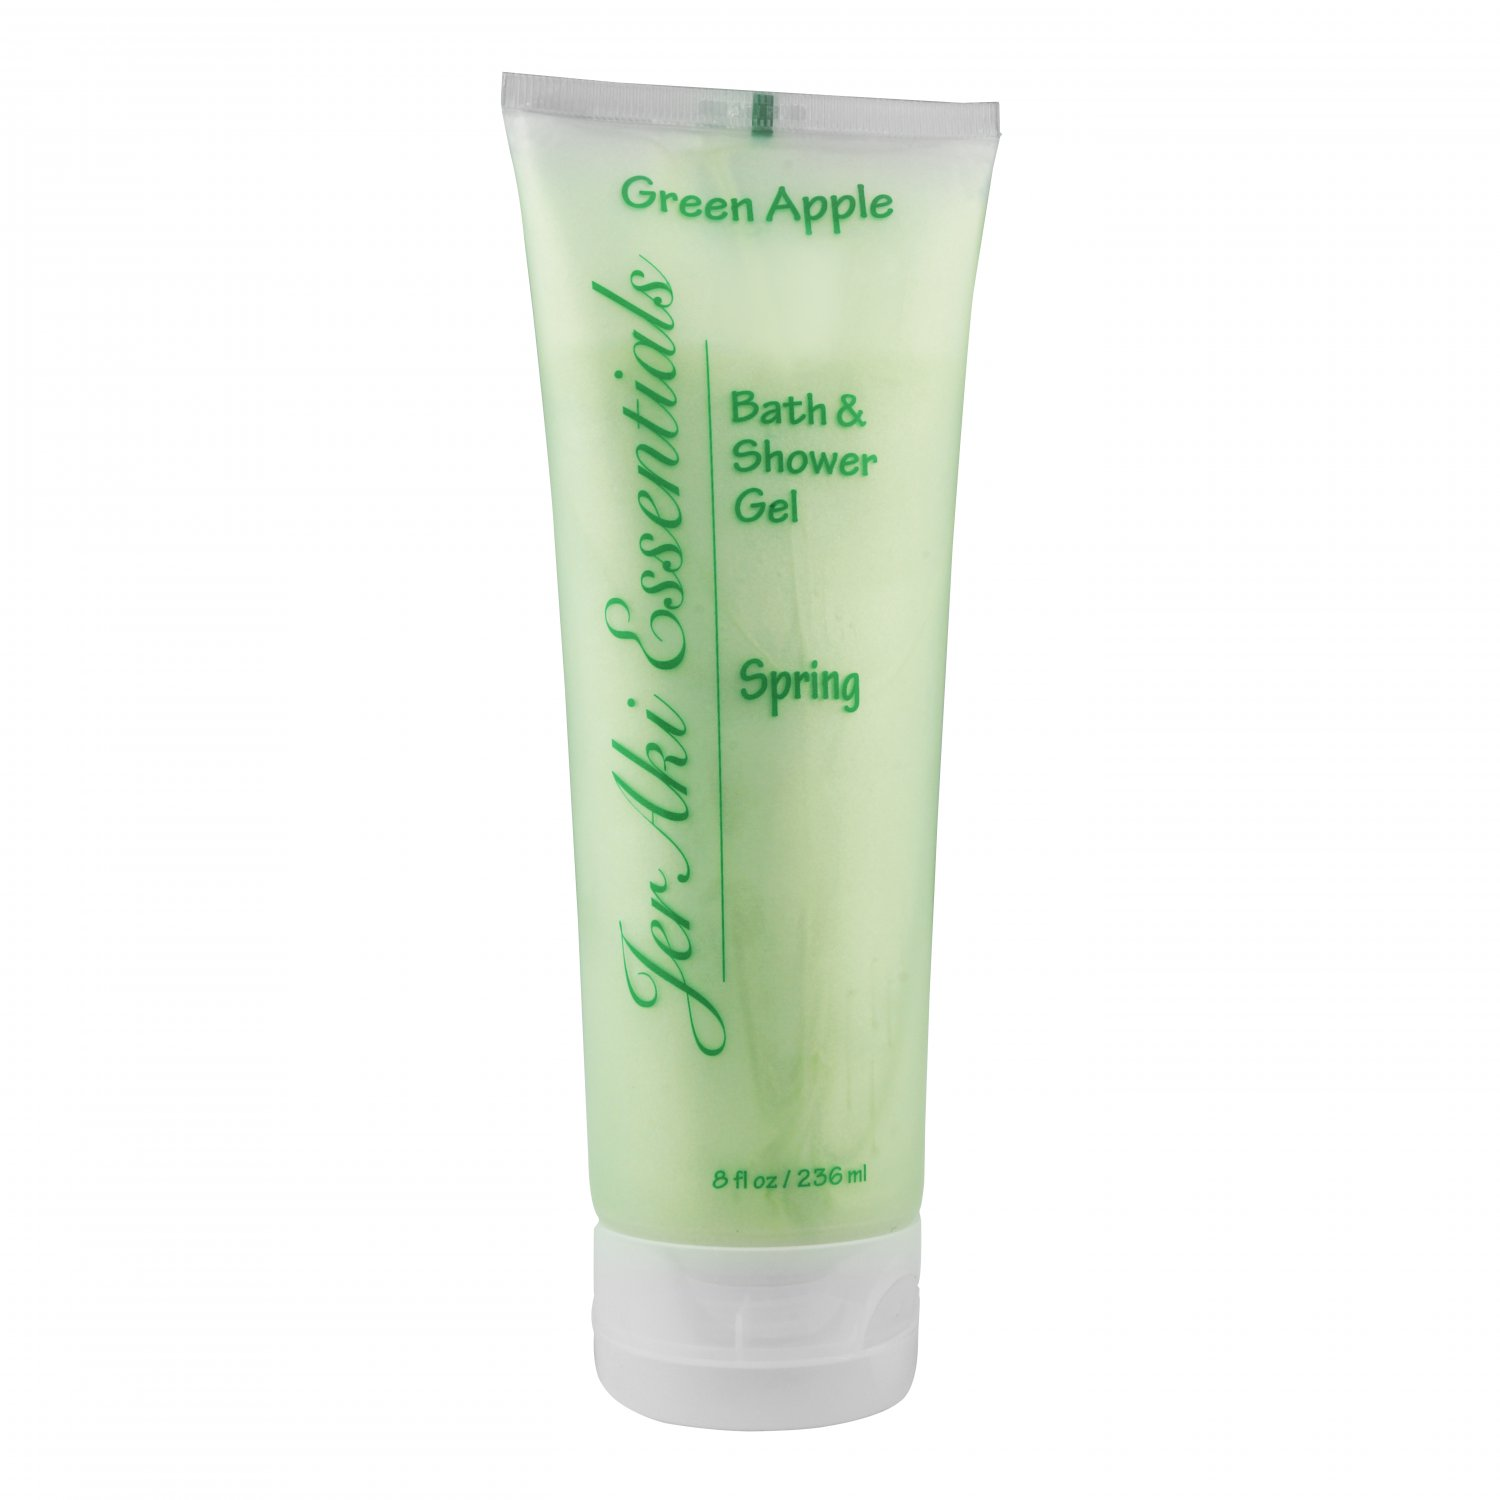 Bath & Shower Gel (Green Apple)